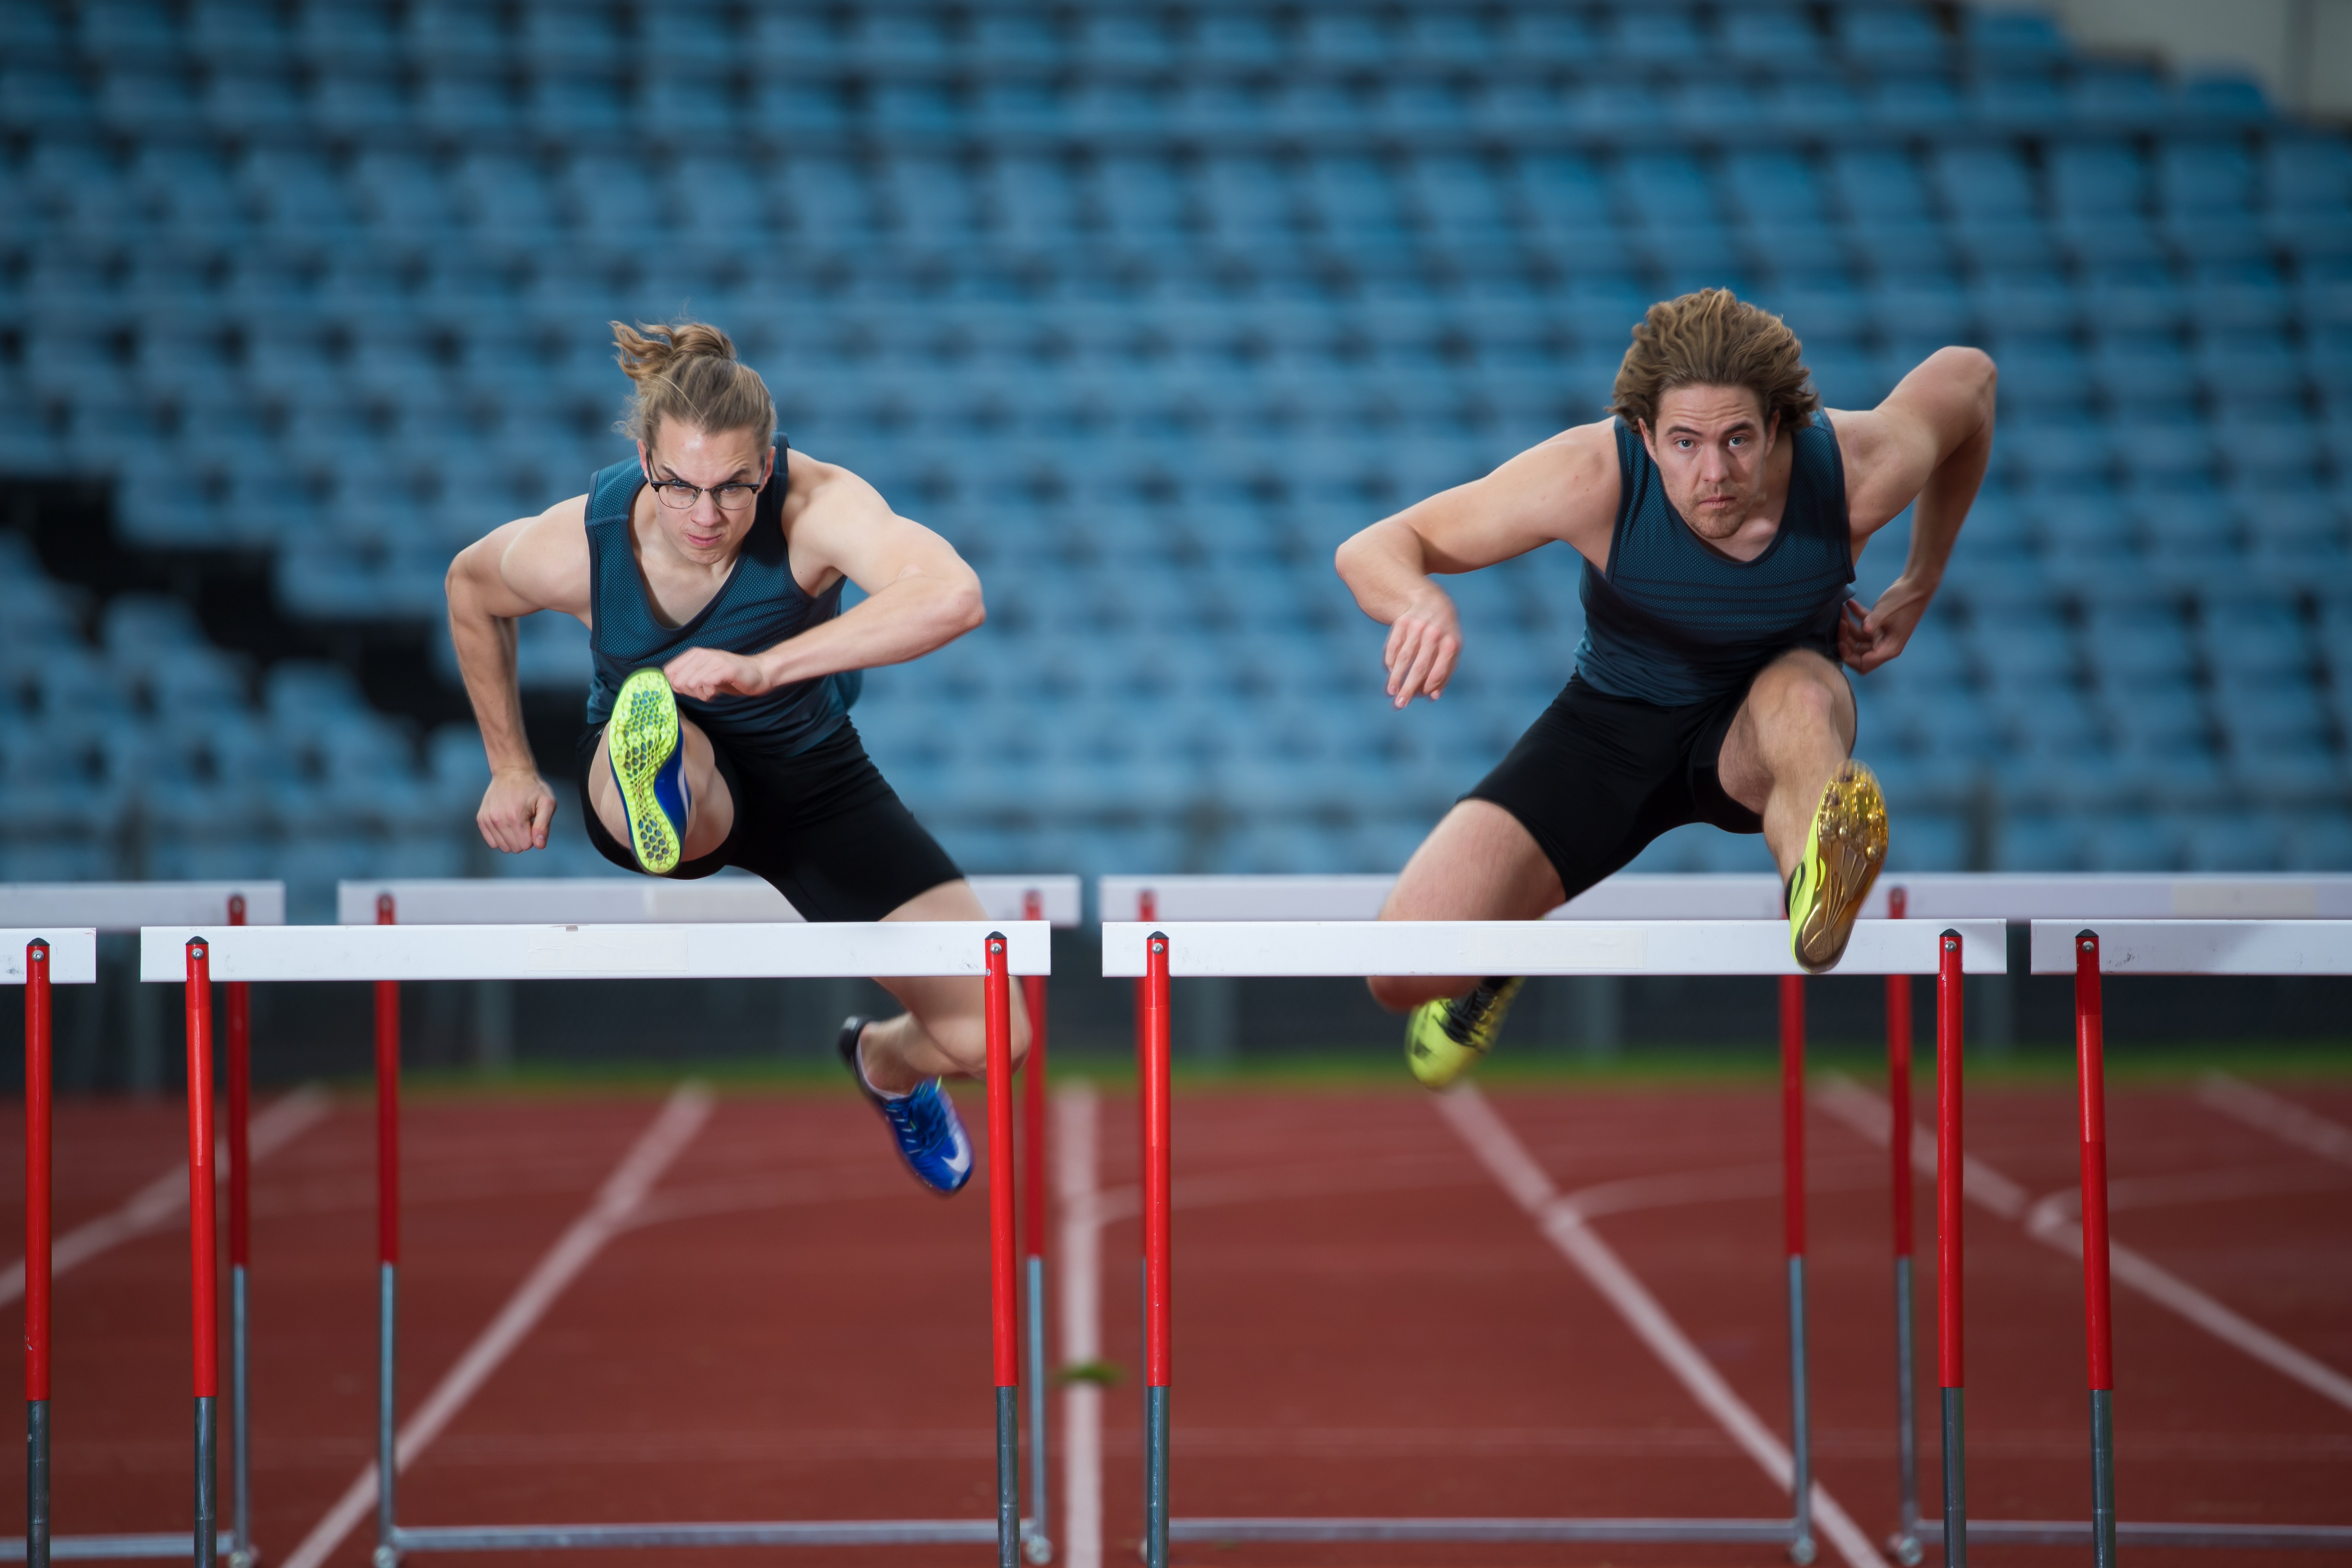 hurdle jumpers